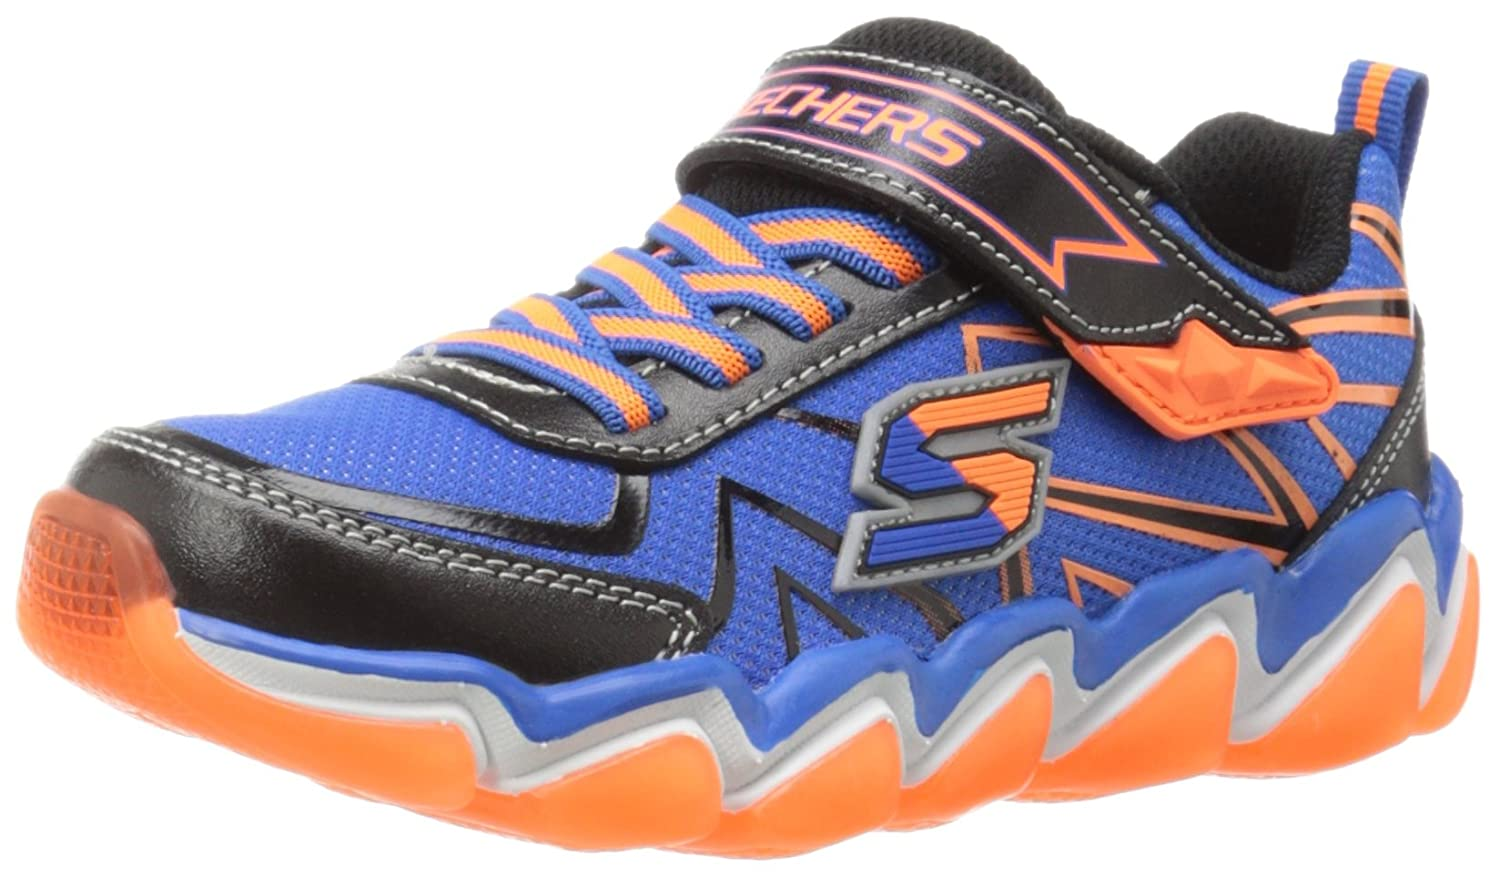 Skechers Kids Boys Skech Air 3.0 Rupture Velcro Strap Sneaker (Little Kid/Big Kid)